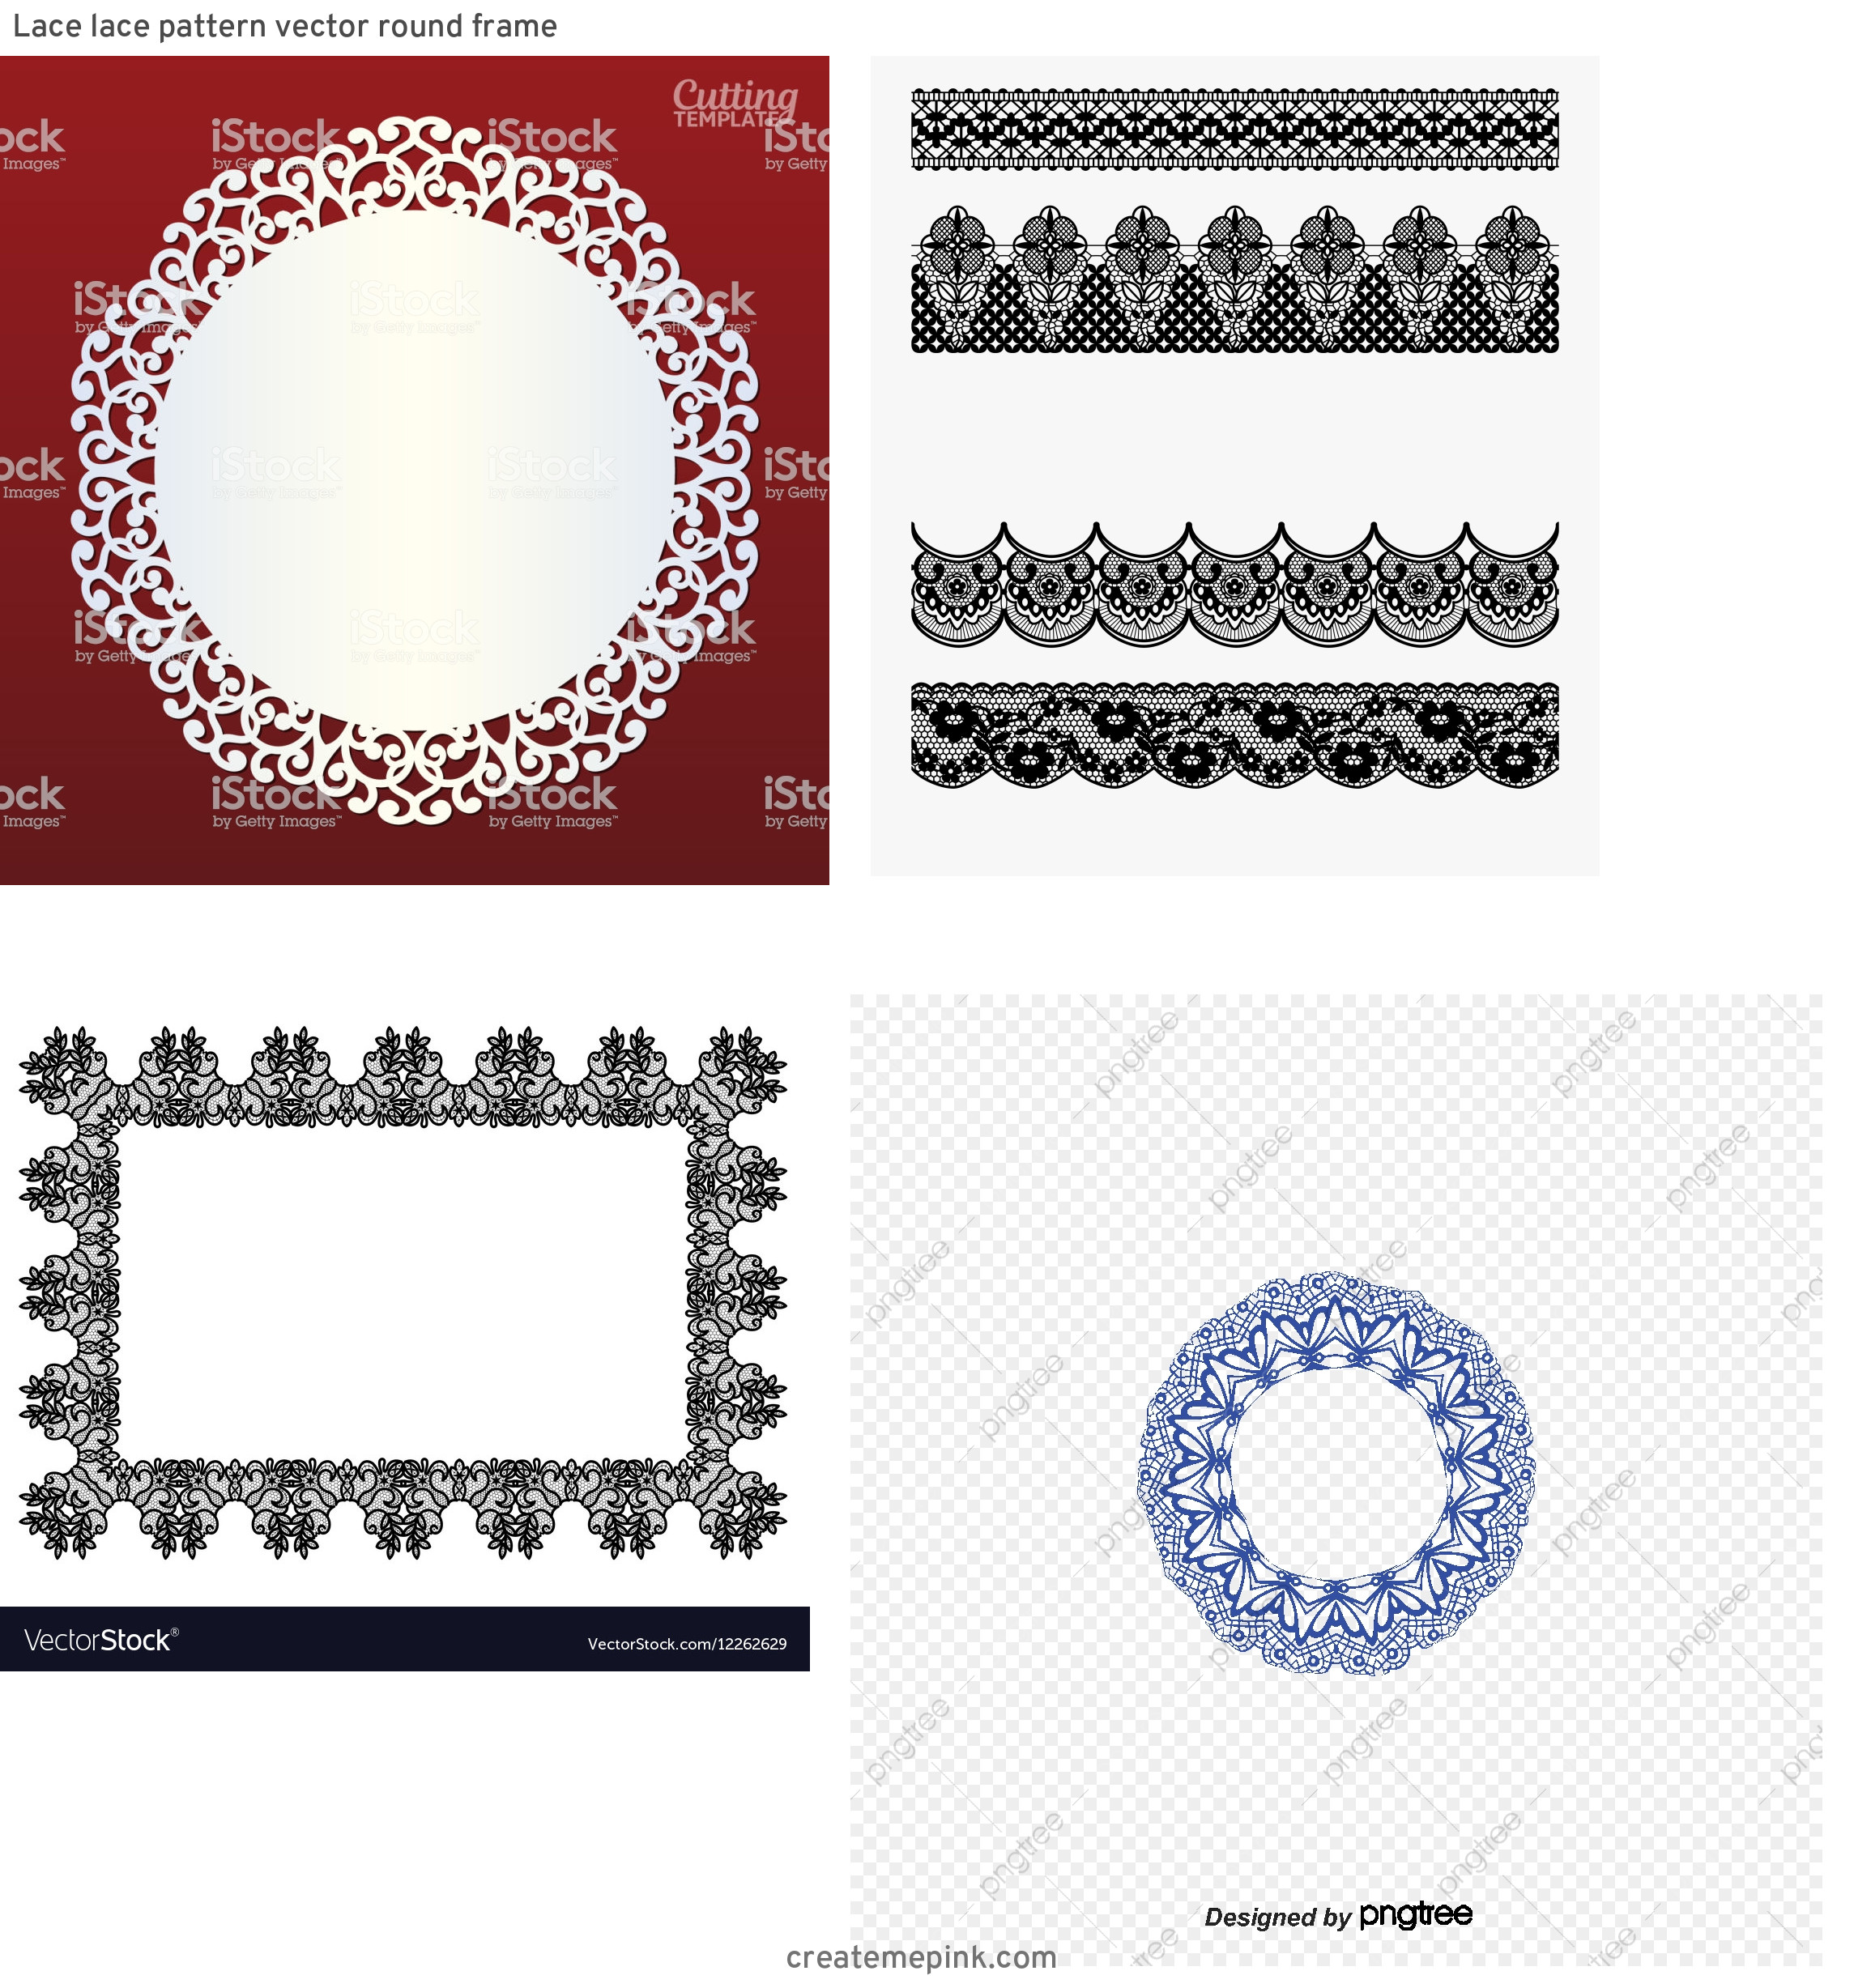 Simple Lace Frame Vector: Lace Lace Pattern Vector Round Frame